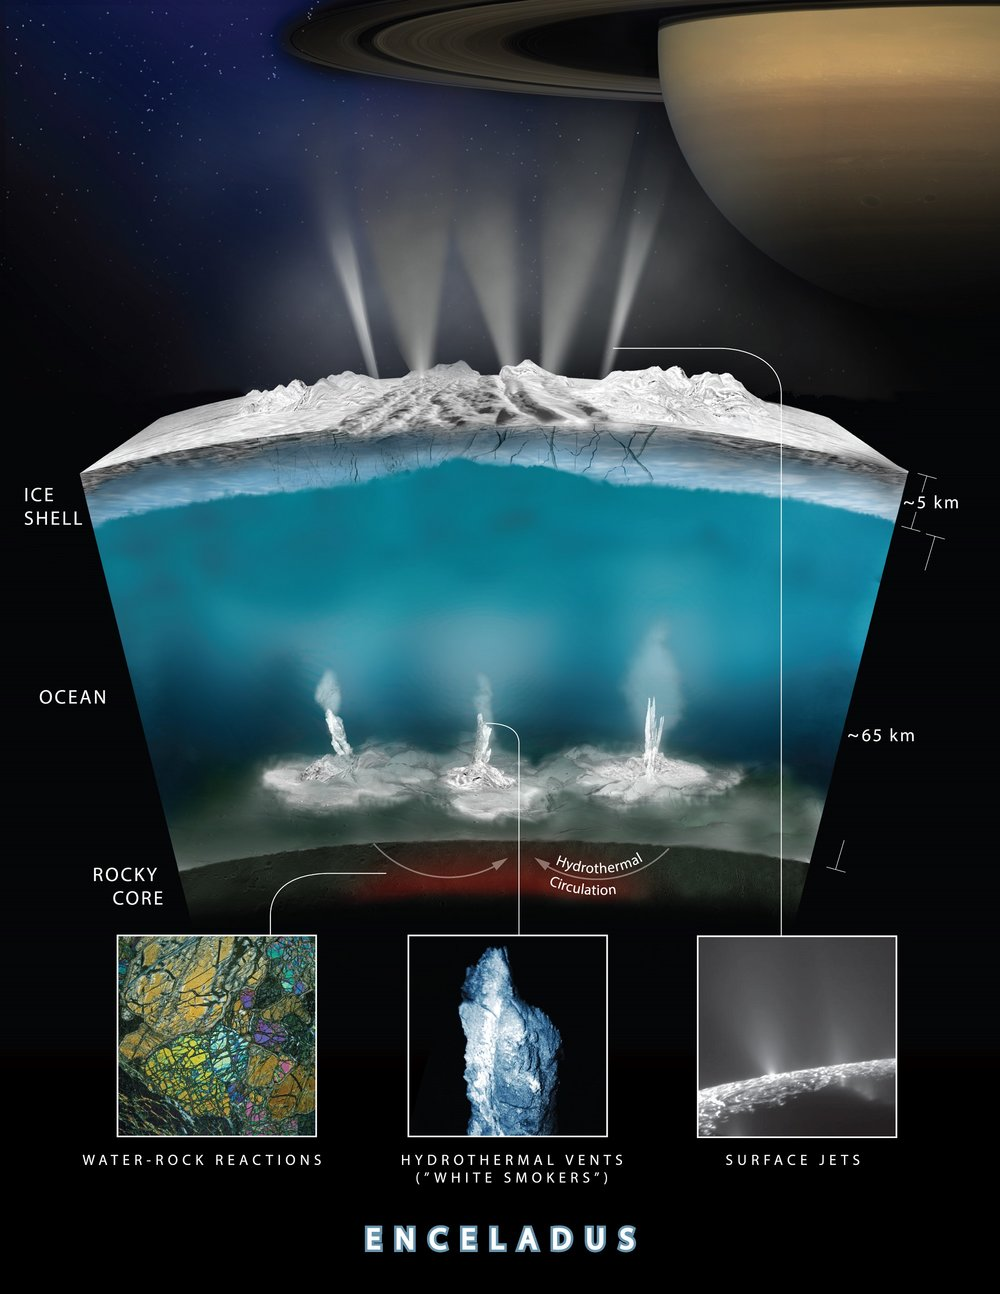 Artist rendering showing an interior cross-section of the crust of Enceladus, which shows how hydrothermal activity may be causing the plumes of water at the moon's surface. - Image Credits: NASA-GSFC/SVS, NASA/JPL-Caltech/Southwest Research Institute - Click to enlarge